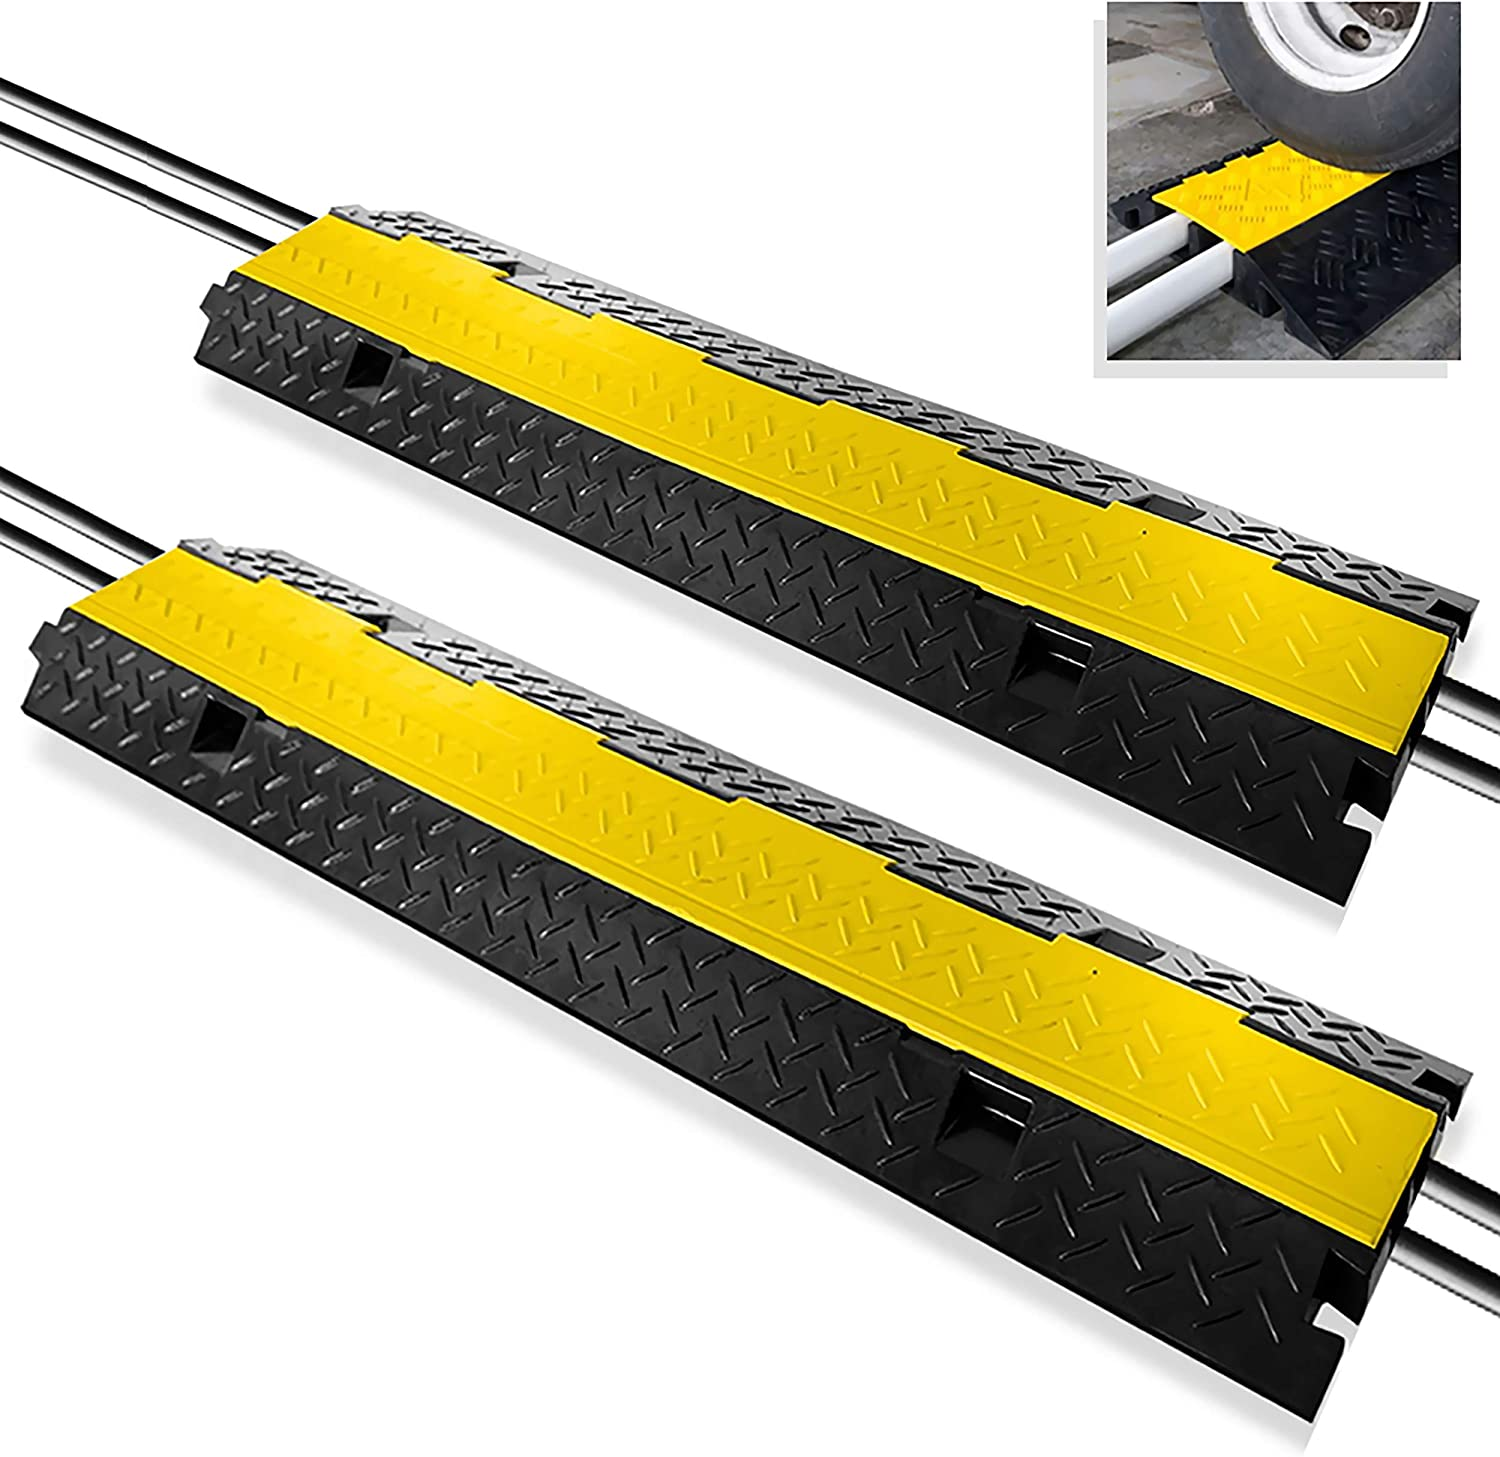 Pyle PCBLCO103X2 Ramp 2 Channel Rubber Floor Cord Concealer-Heavy Duty Cable Protector Wire/Hose/Pipe Hider Driveway Protective Covering Armor, Yellow